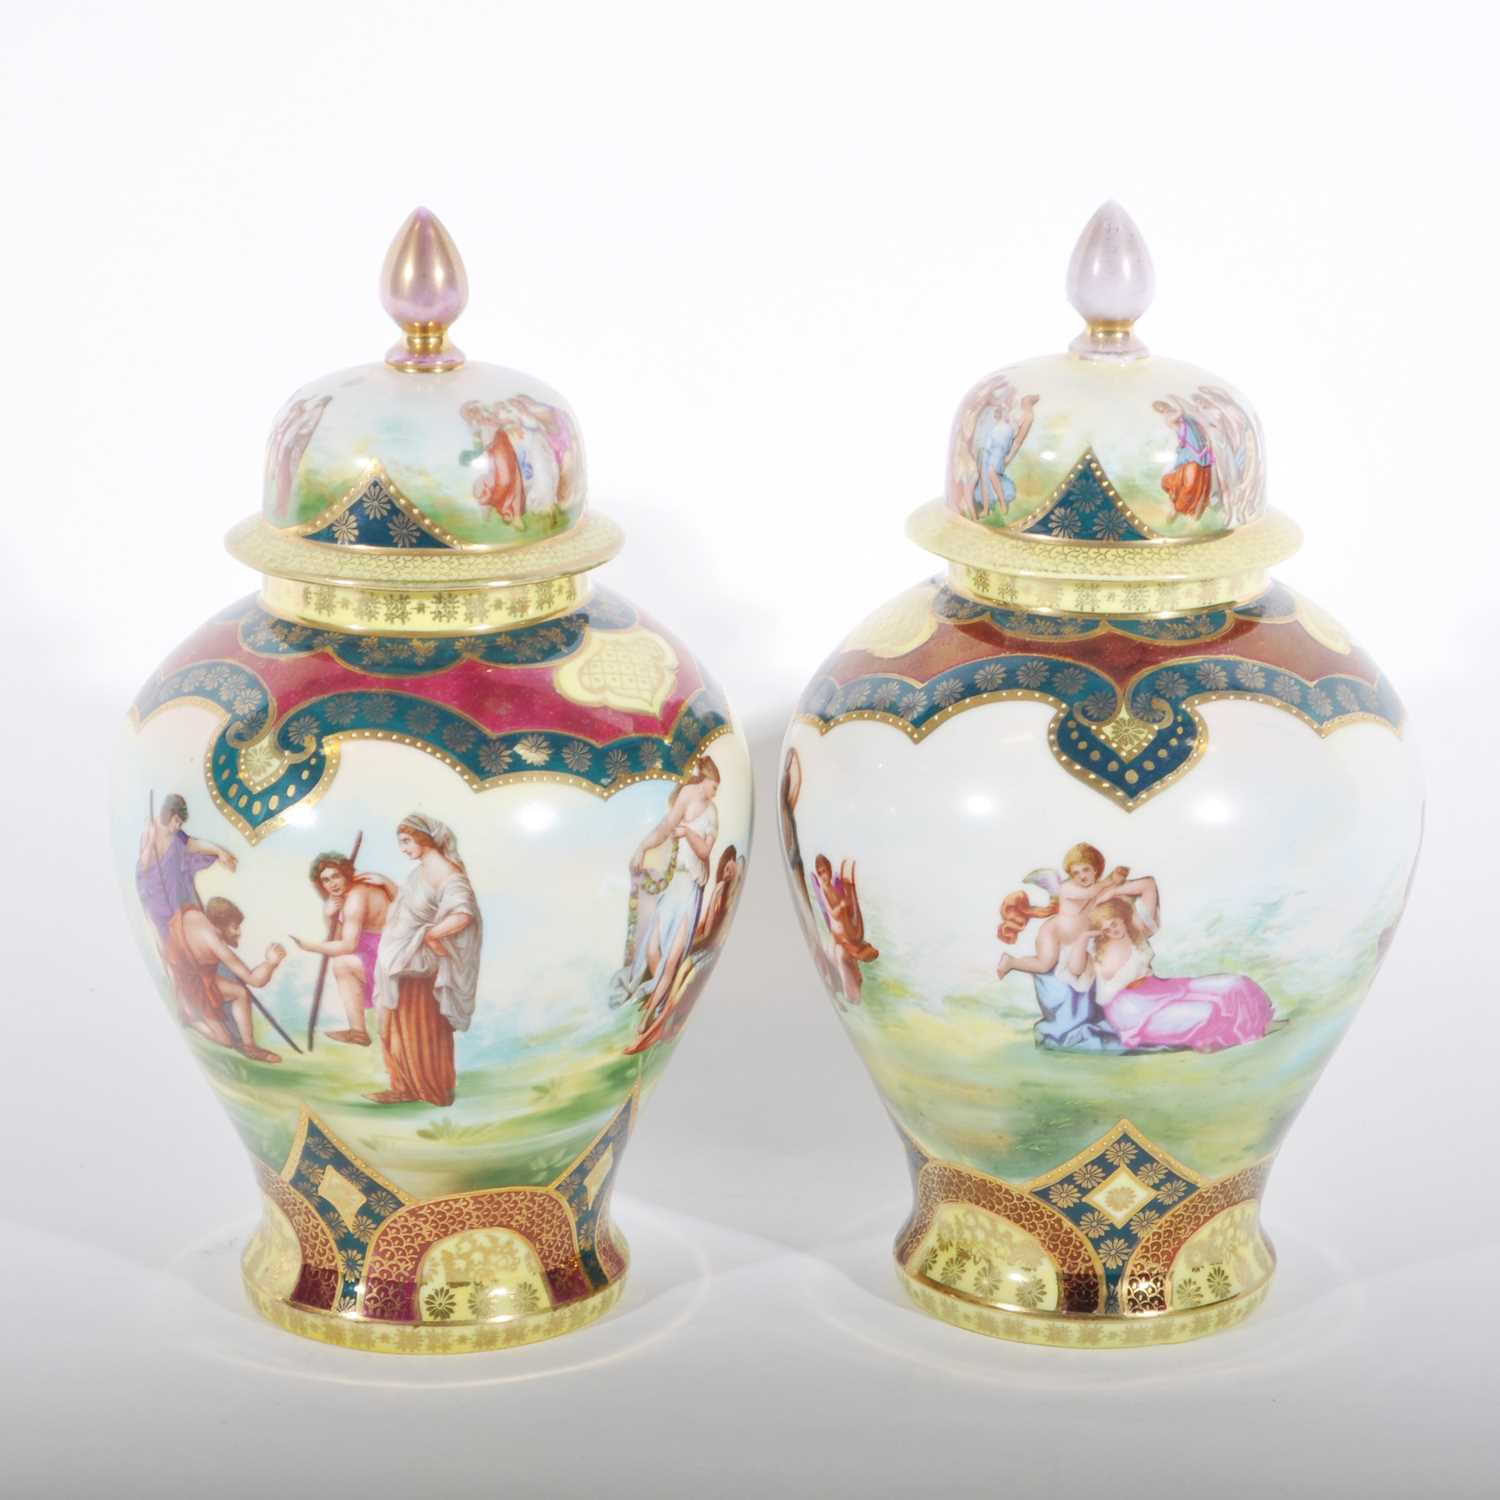 Lot 37-A pair of Viennese style baluster shaped covered vases